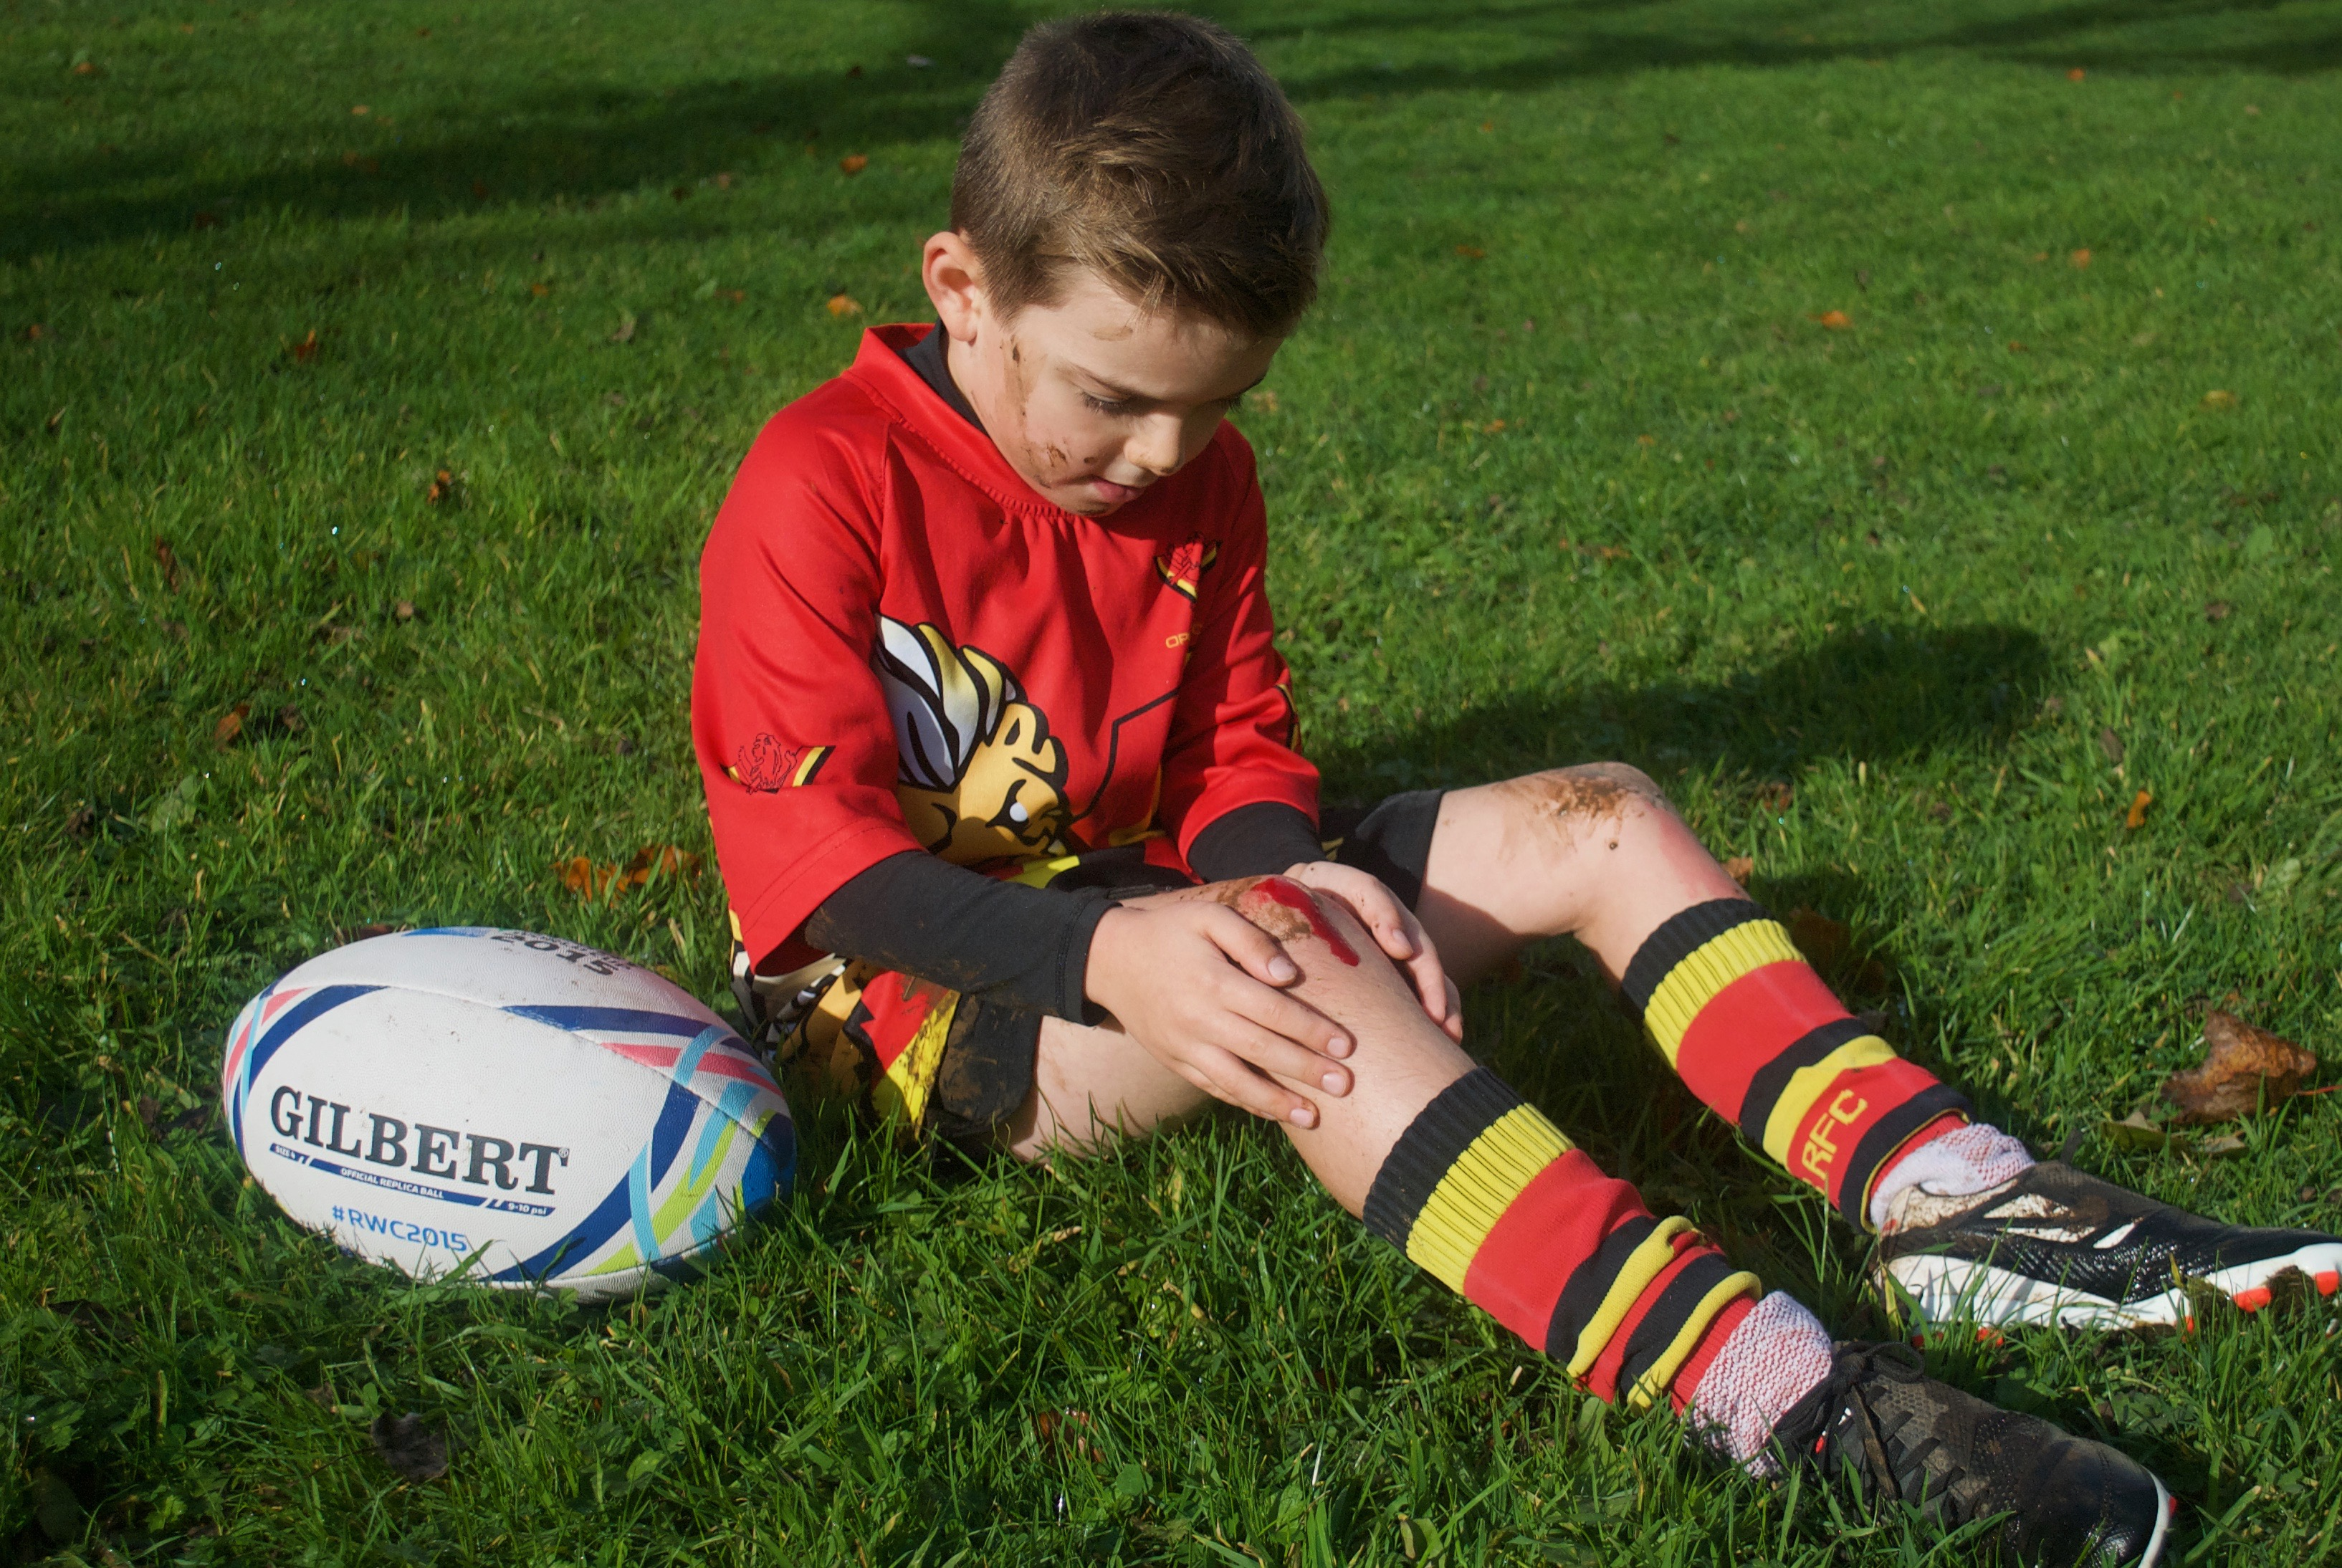 Child injured playing rugby